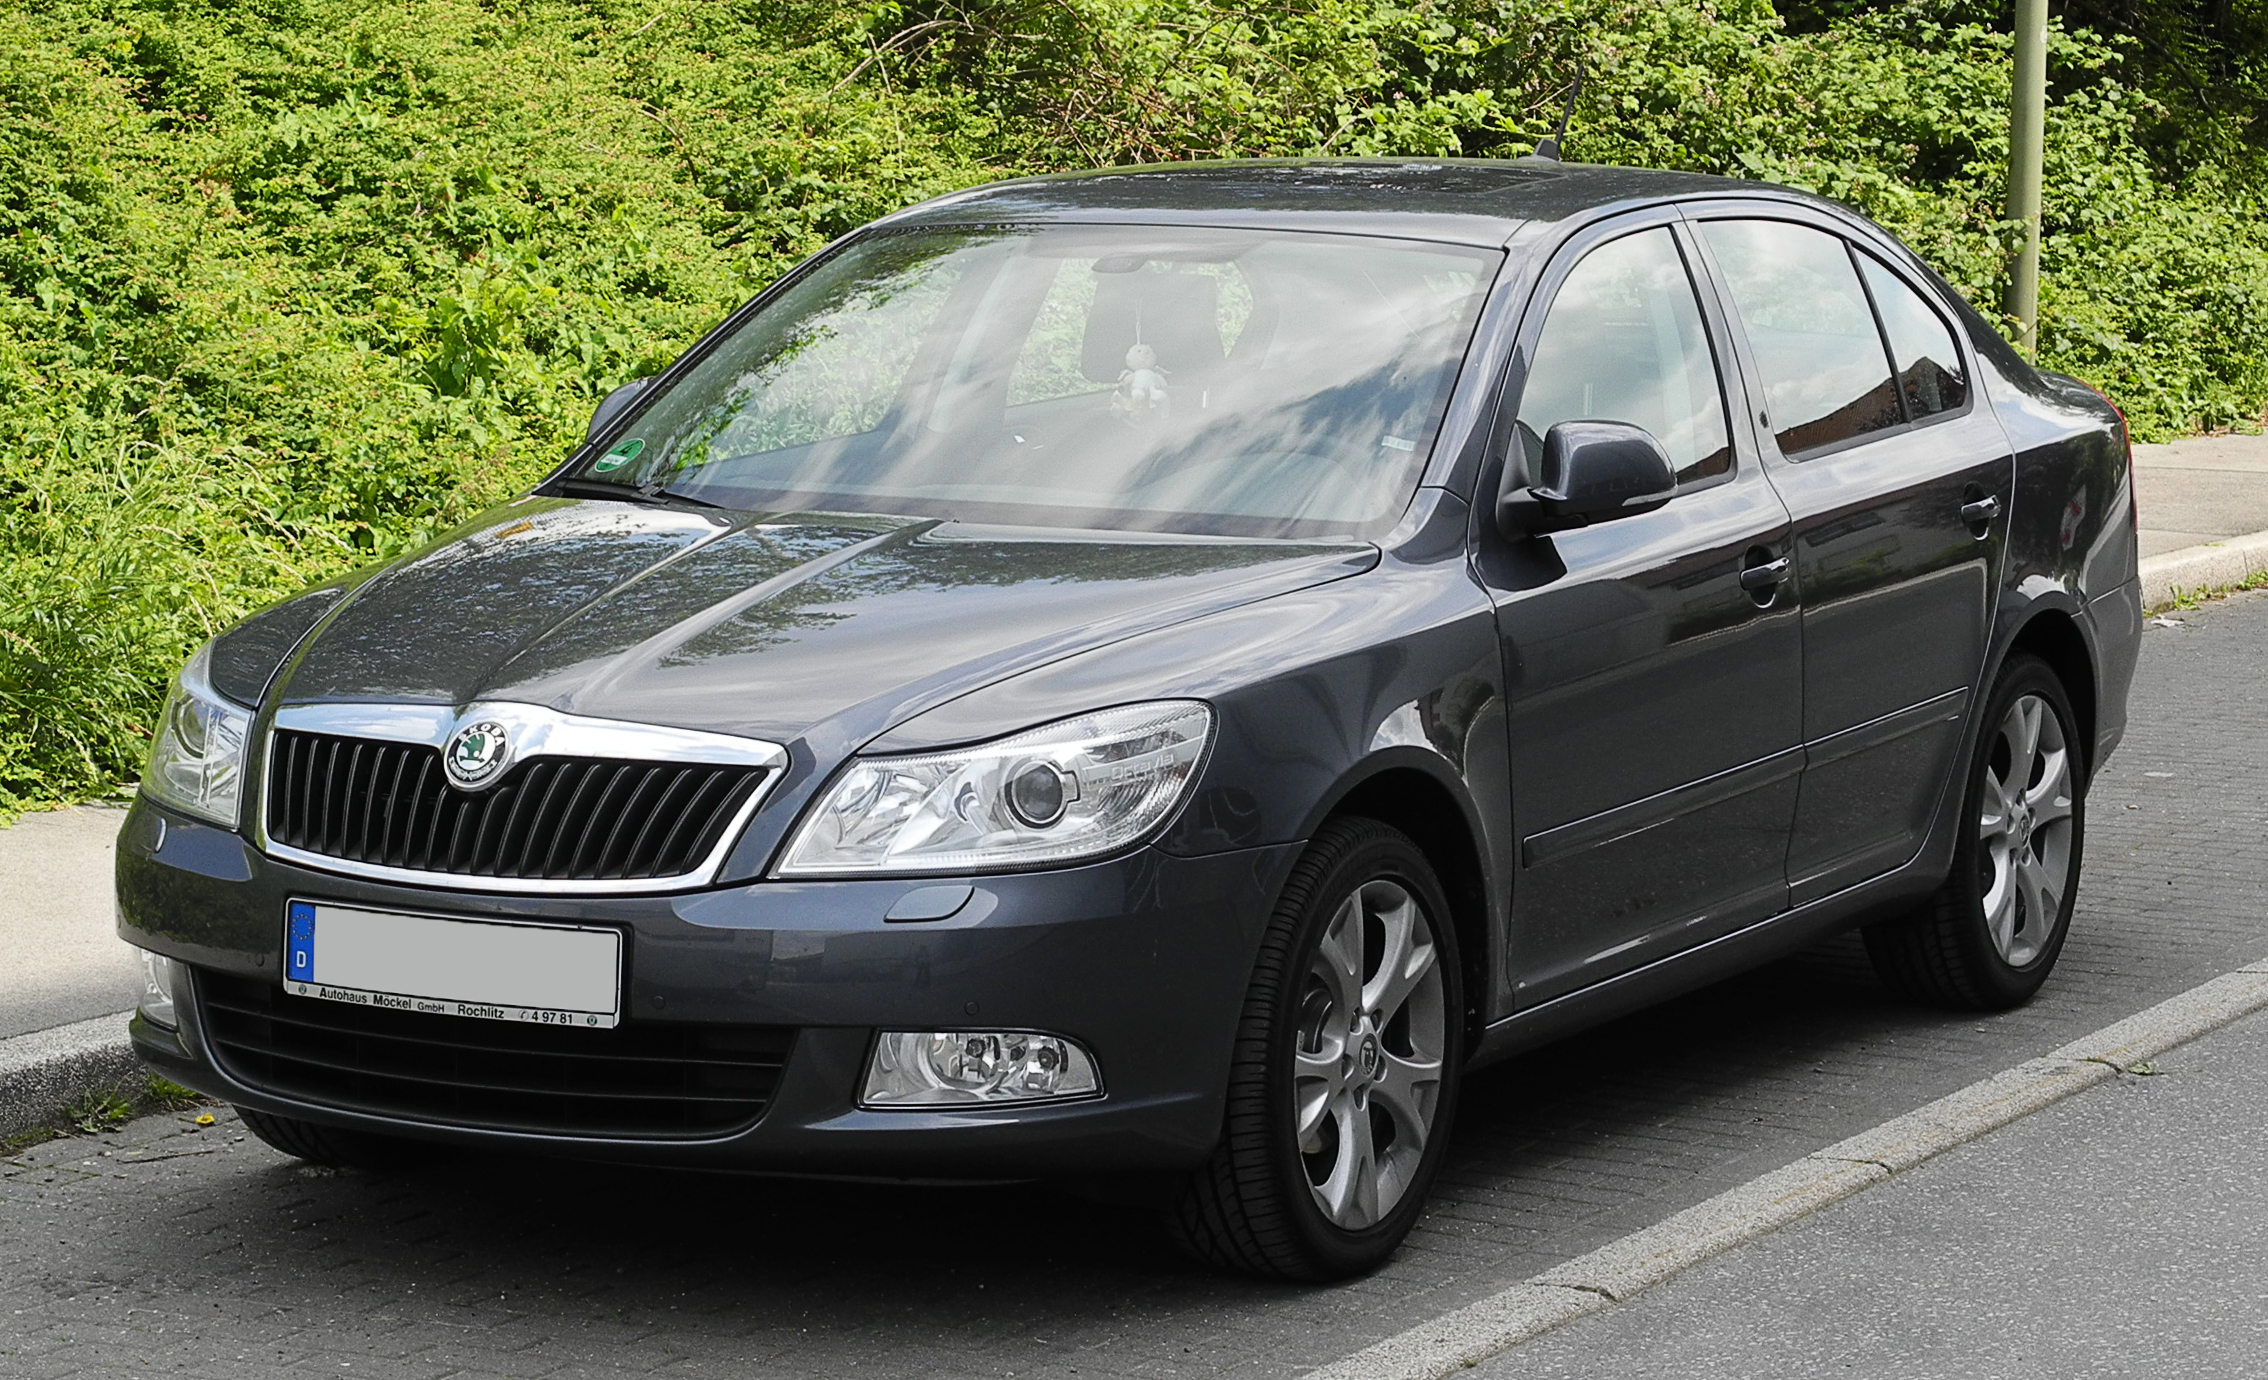 2014 skoda octavia tour iii pictures information and specs auto. Black Bedroom Furniture Sets. Home Design Ideas